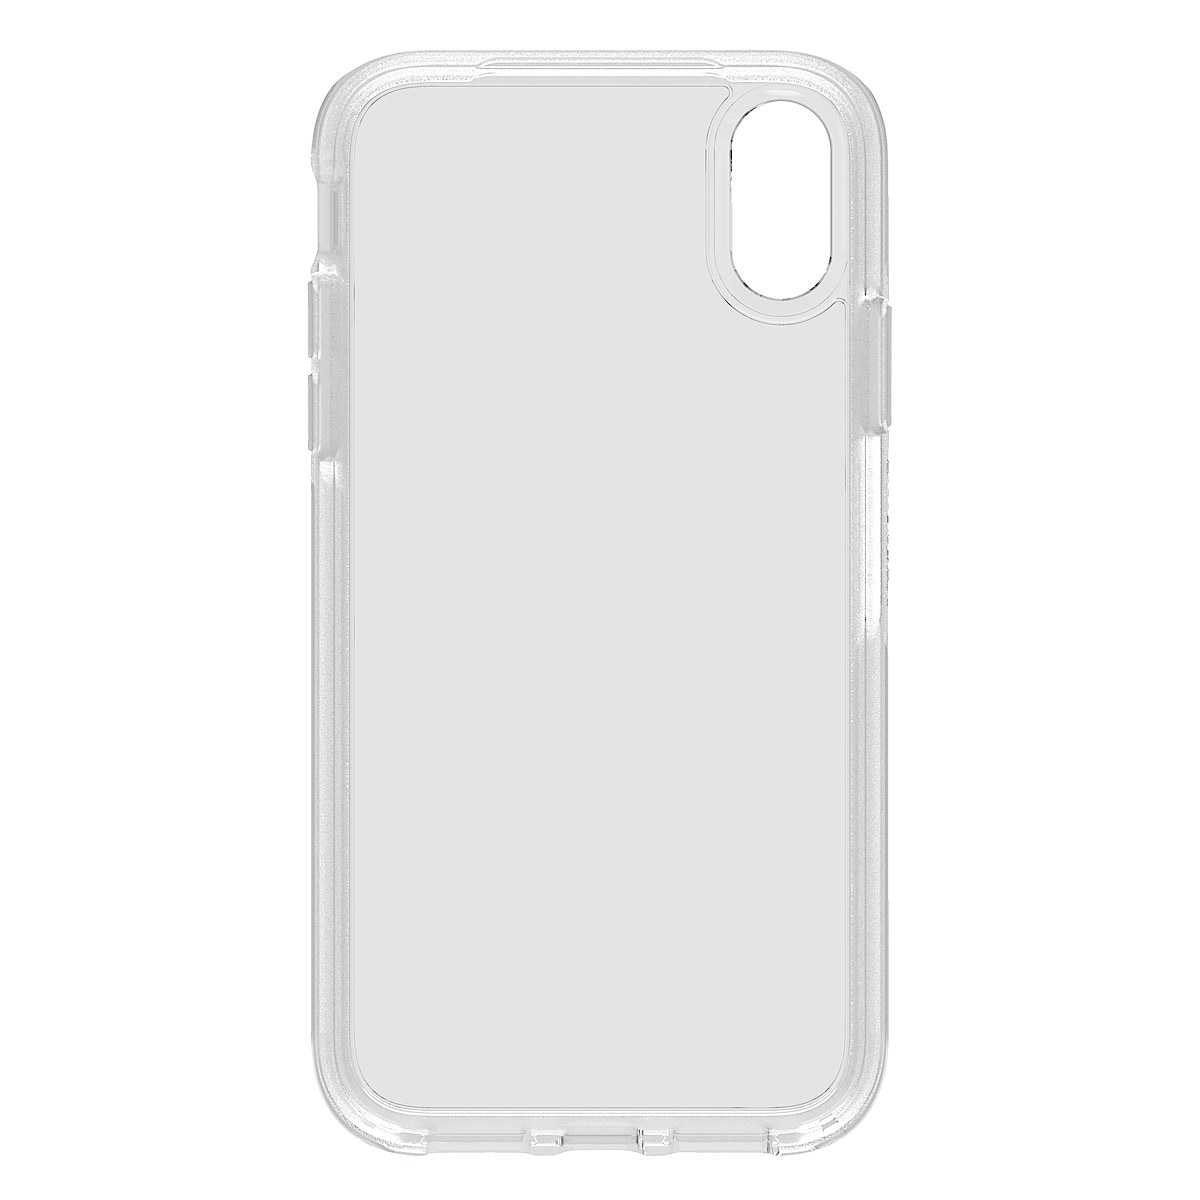 Deksel For Iphone Xr Clas Ohlson